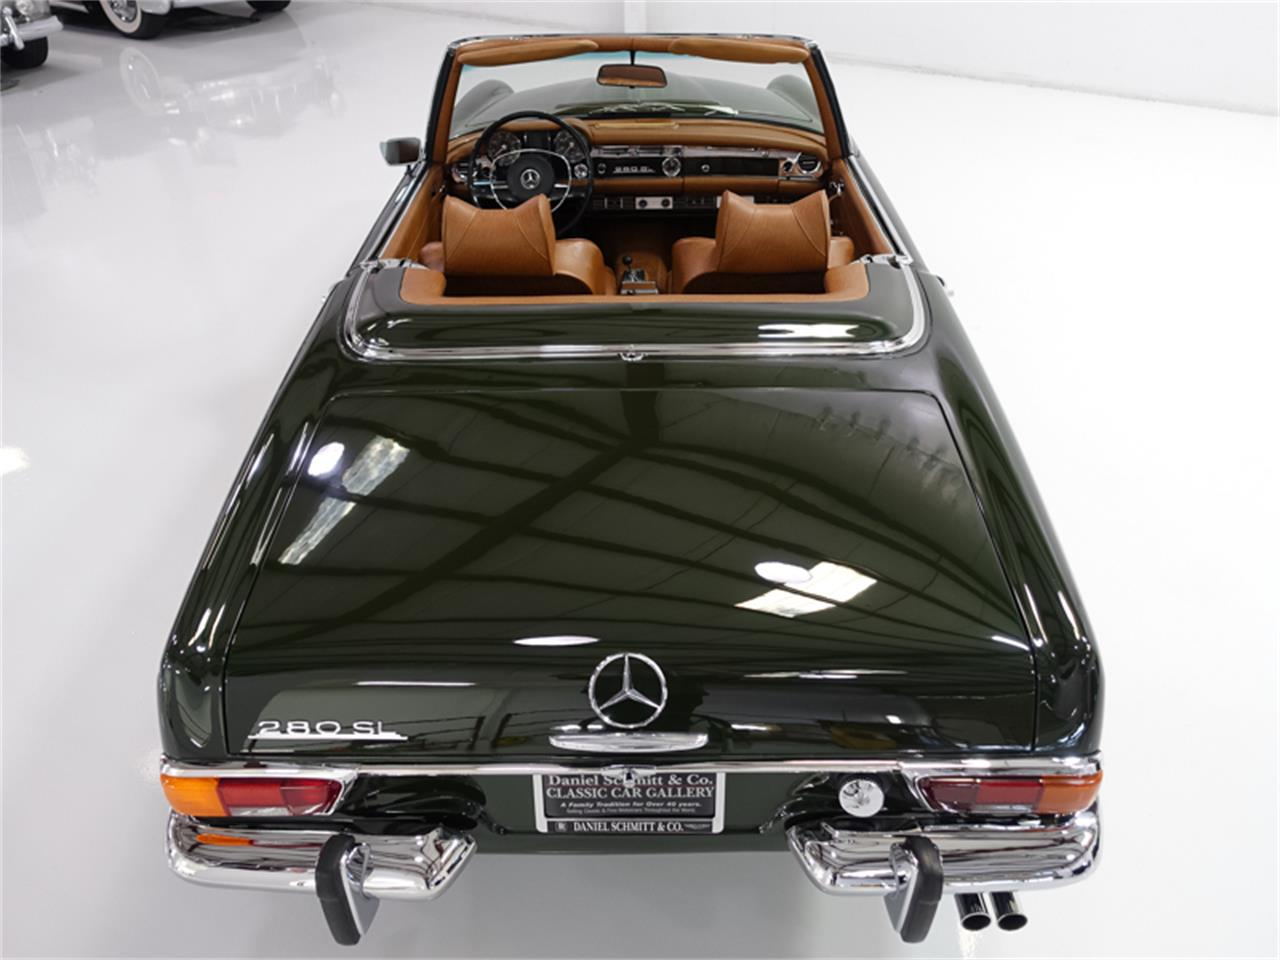 Large Picture of Classic 1971 Mercedes-Benz 280SL Offered by Daniel Schmitt & Co. - PGT6